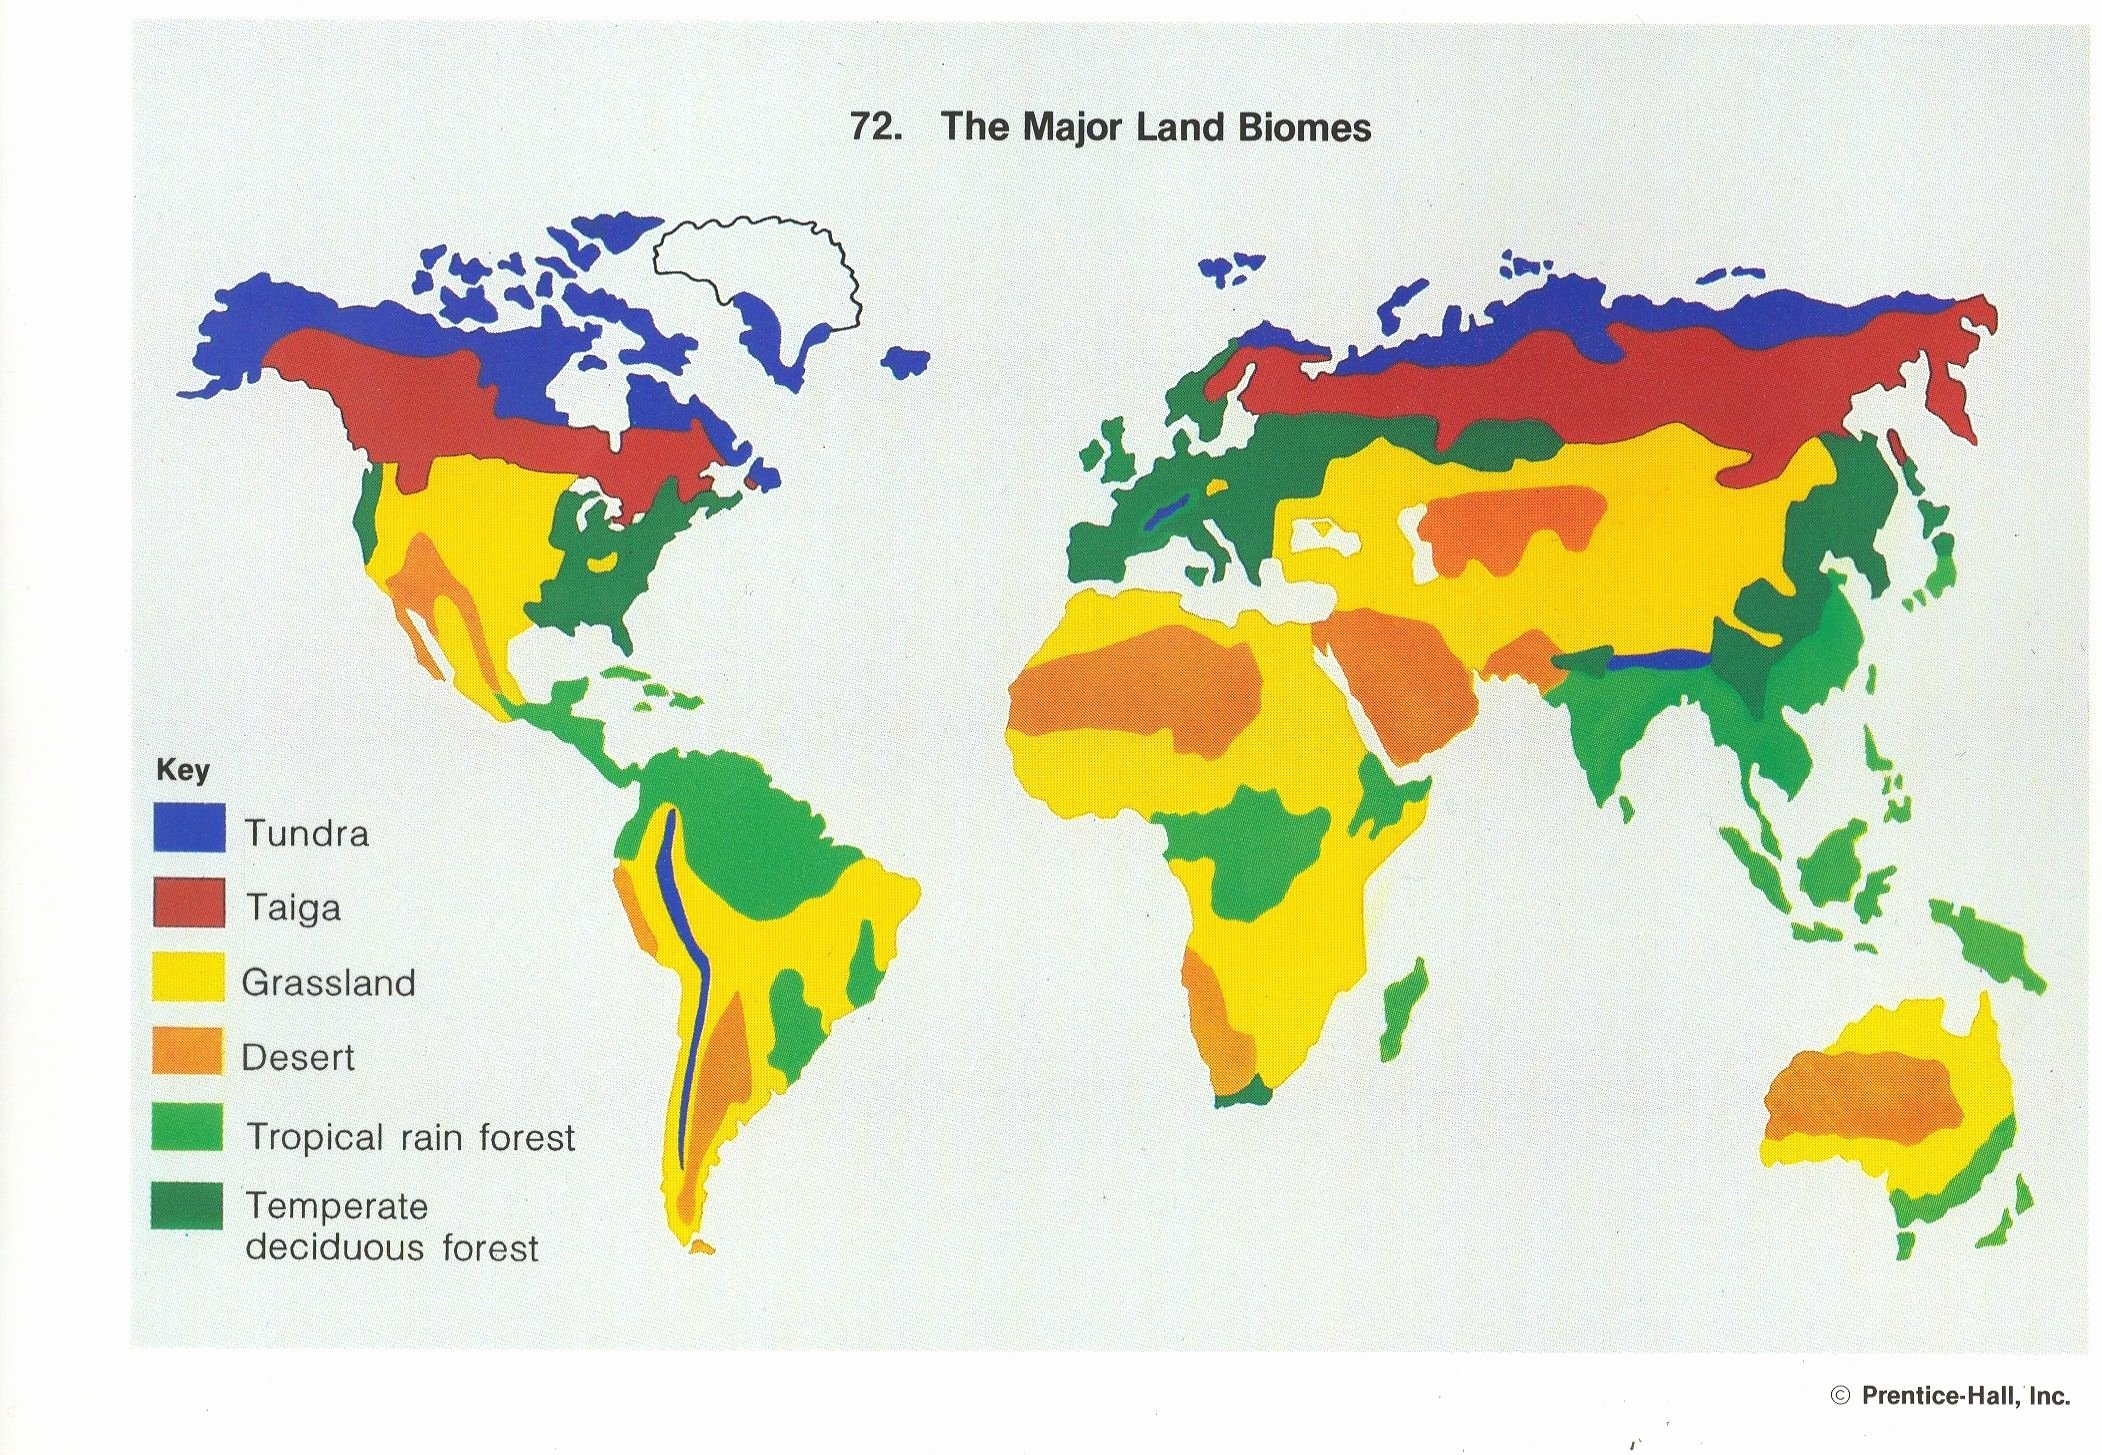 World Biome Map Coloring Worksheet Awesome World Biomes Map Pdf New Biome Utlr 3dnews Co Best